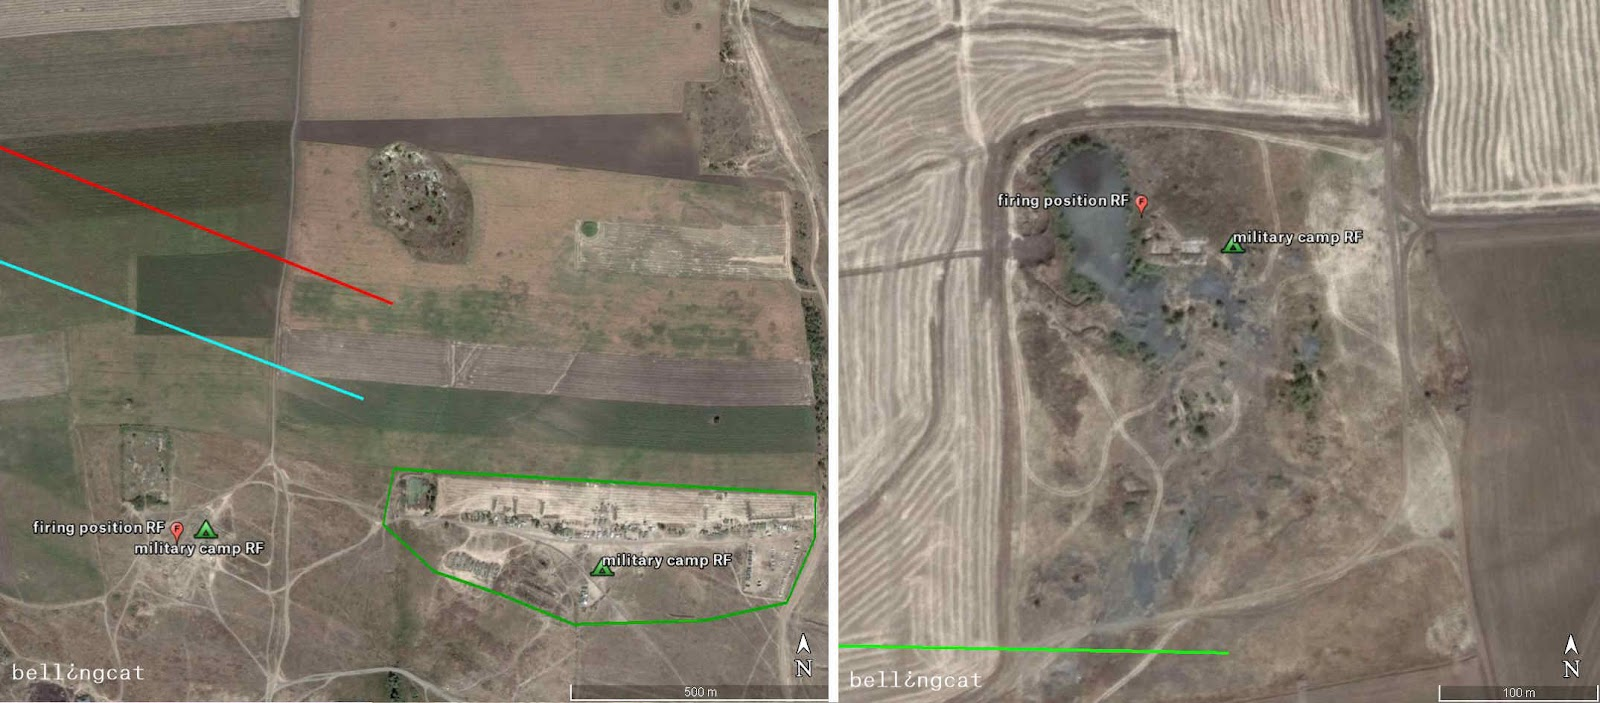 Firing position 1 and military camp (left) and Firing position 2 and military camp (right) Both Google Earth satellite images from 08/08/2014